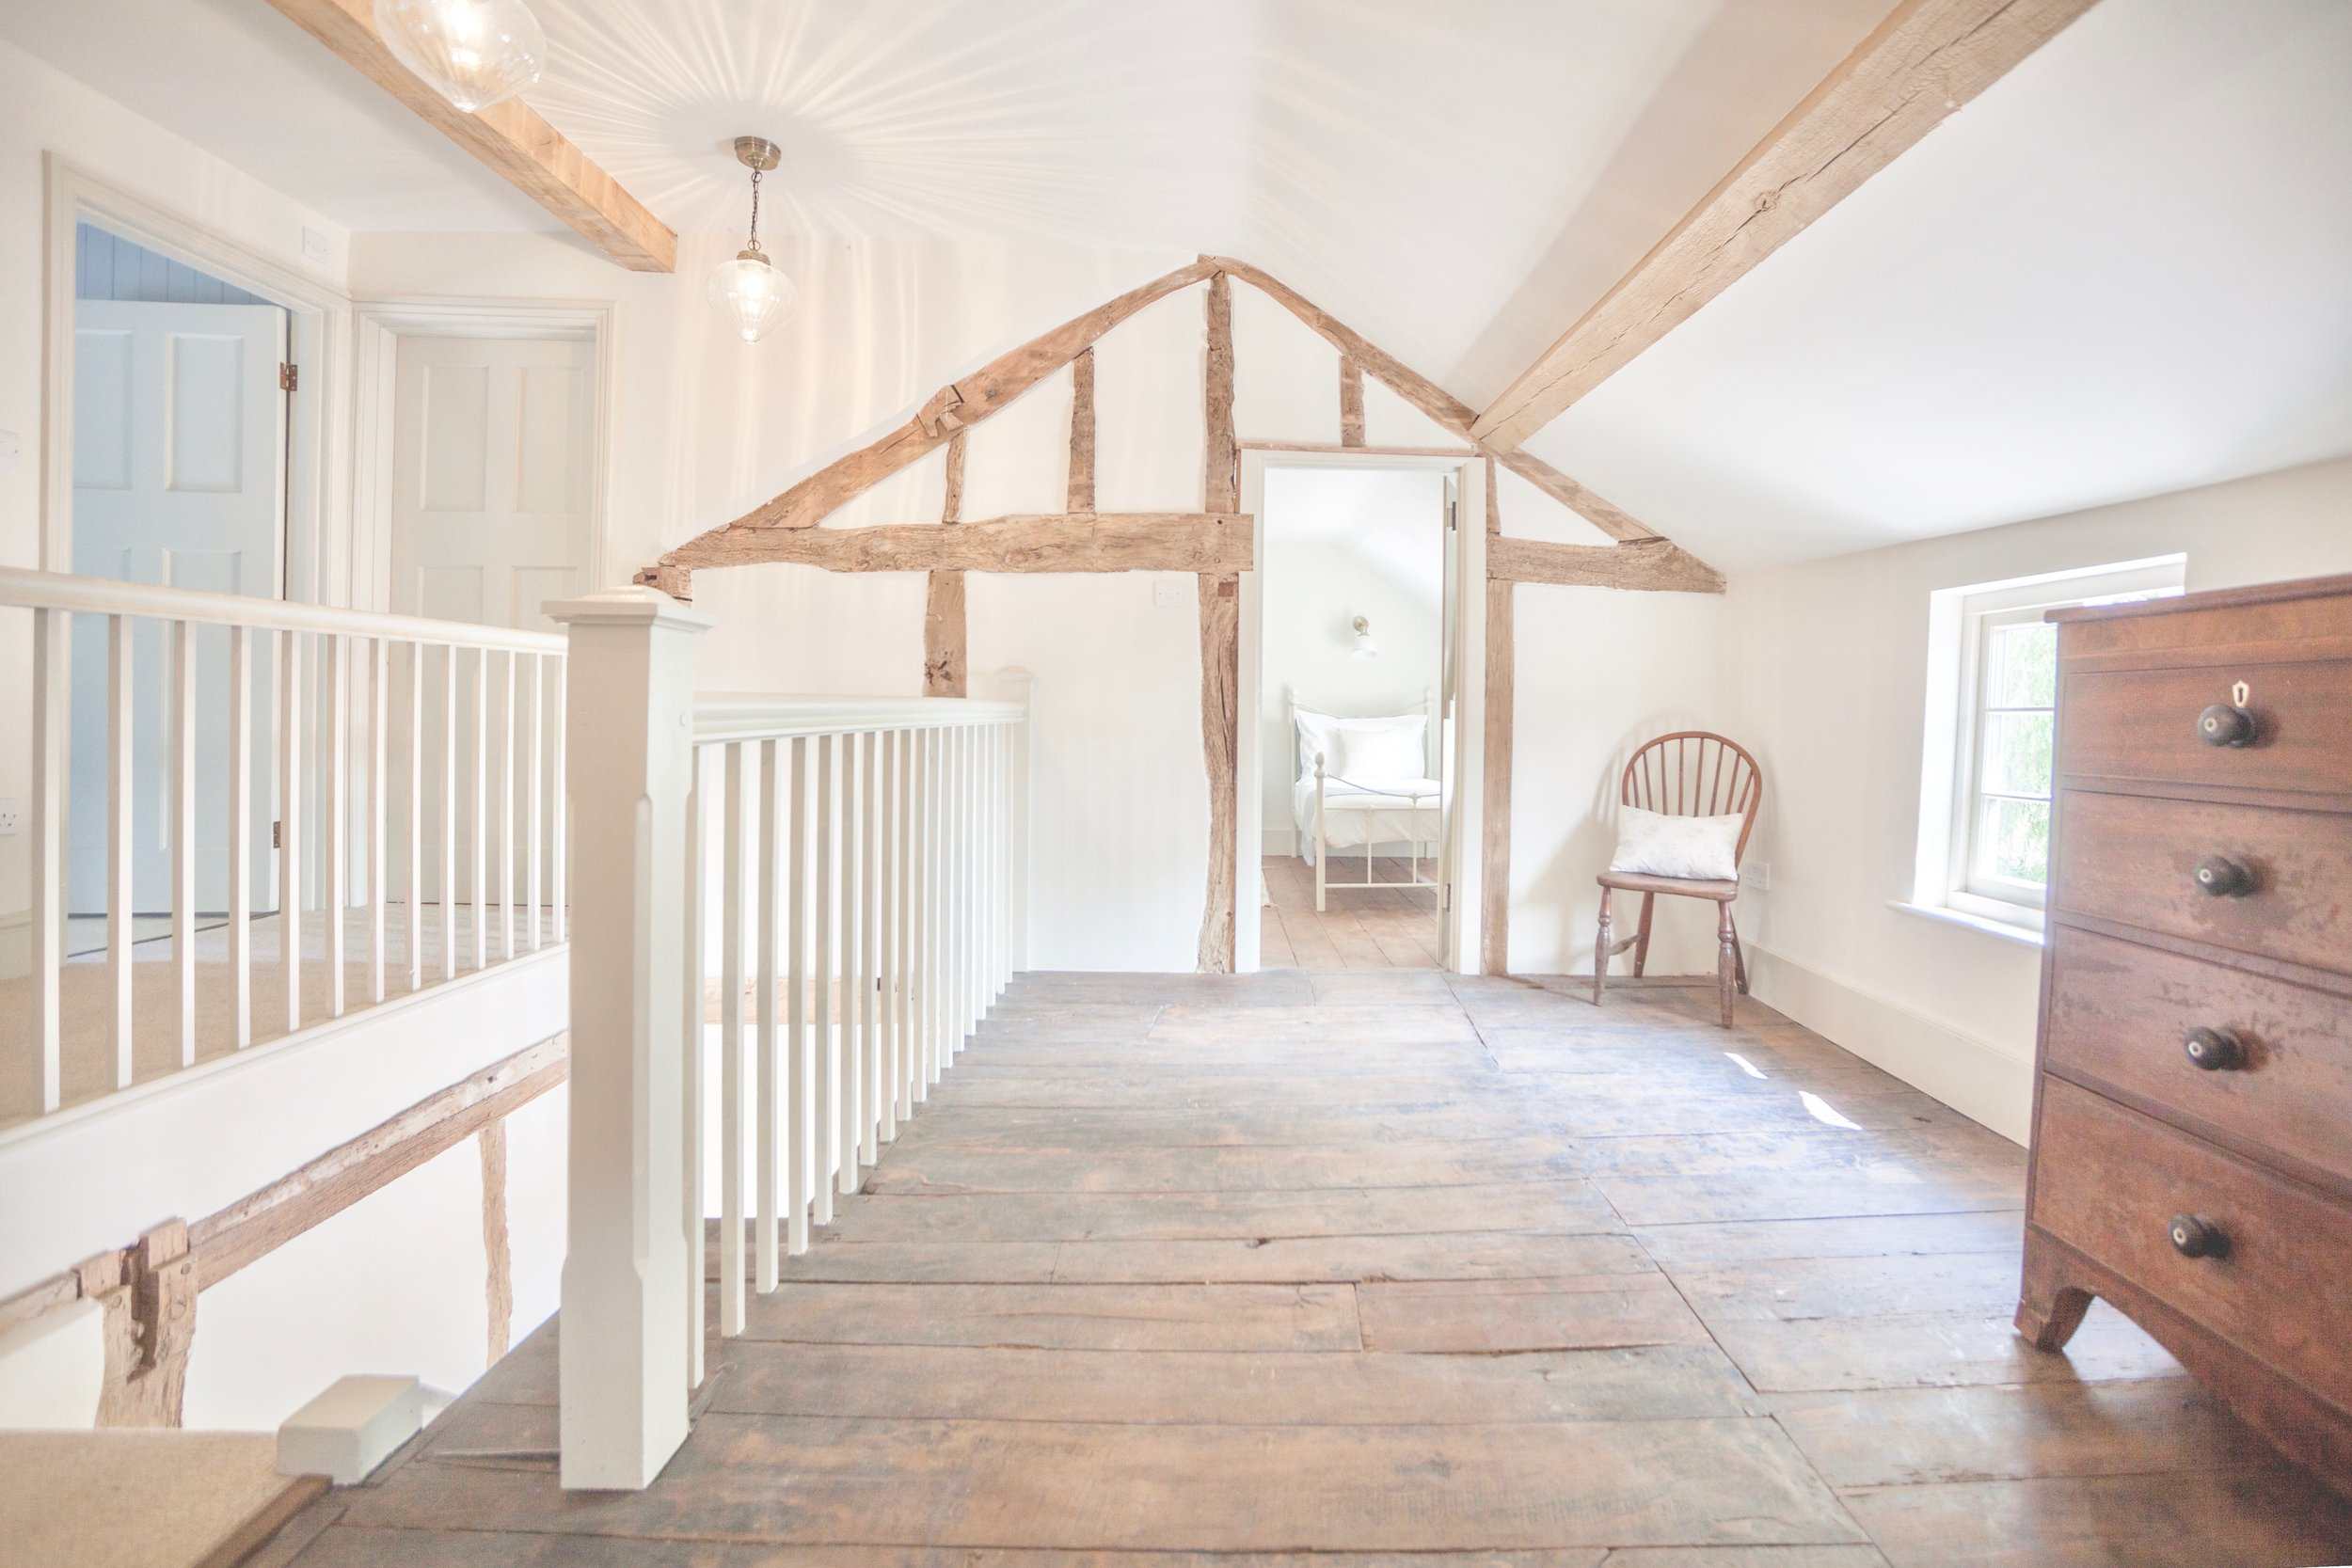 Herefordshire Farmhosue Project - Designed by Hannah Llewelyn Interior Design - hlinteriors.co.uk17.jpg